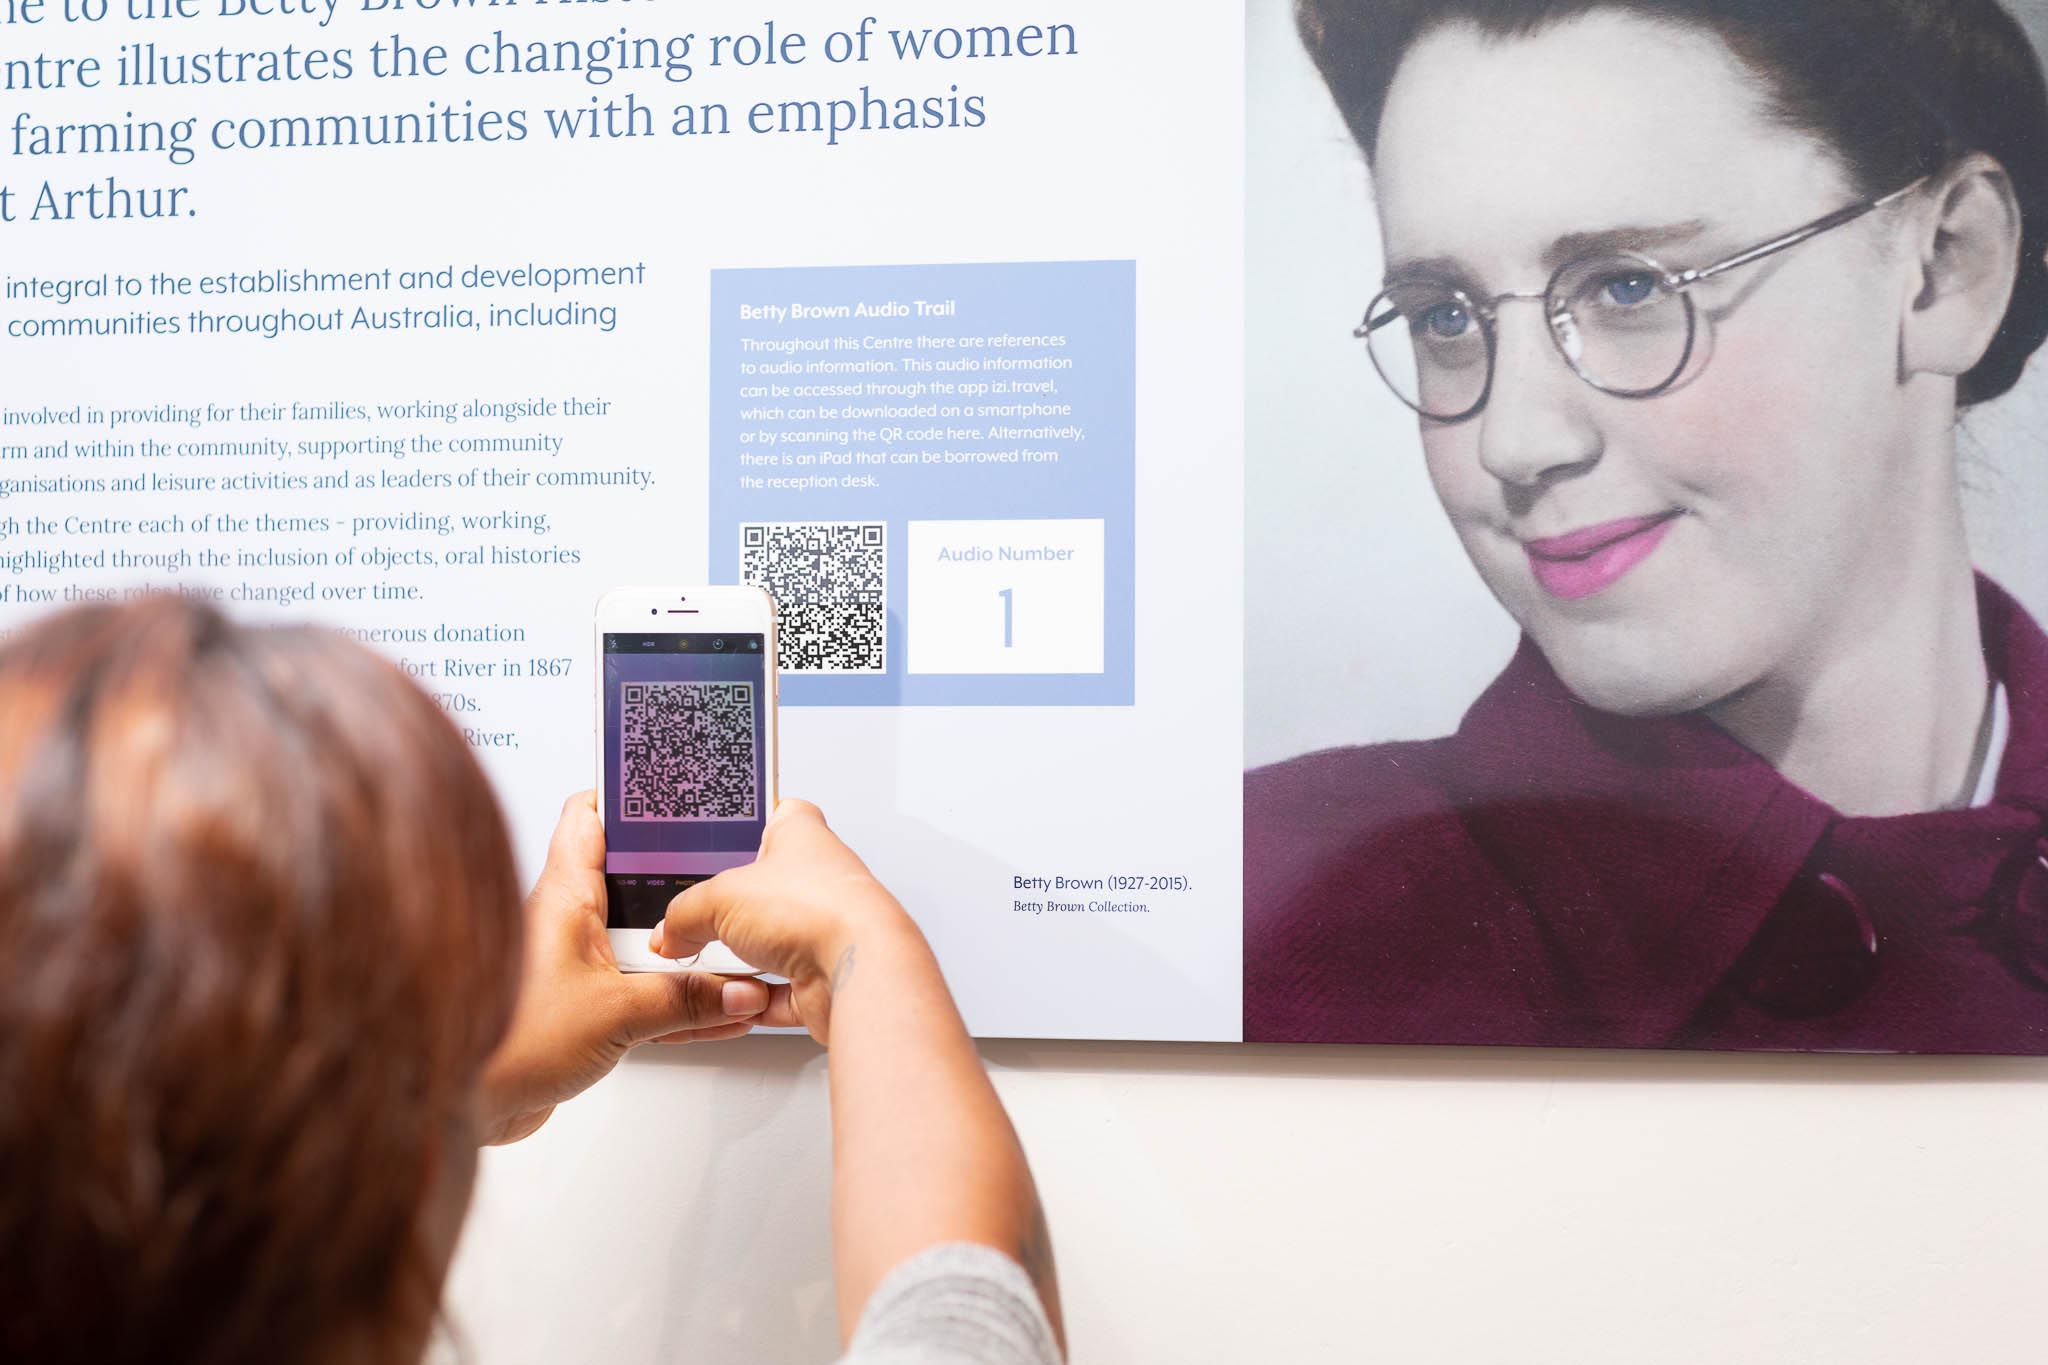 Museum visitor scanning QR code with smartphone. Photo by Caro Telfer.